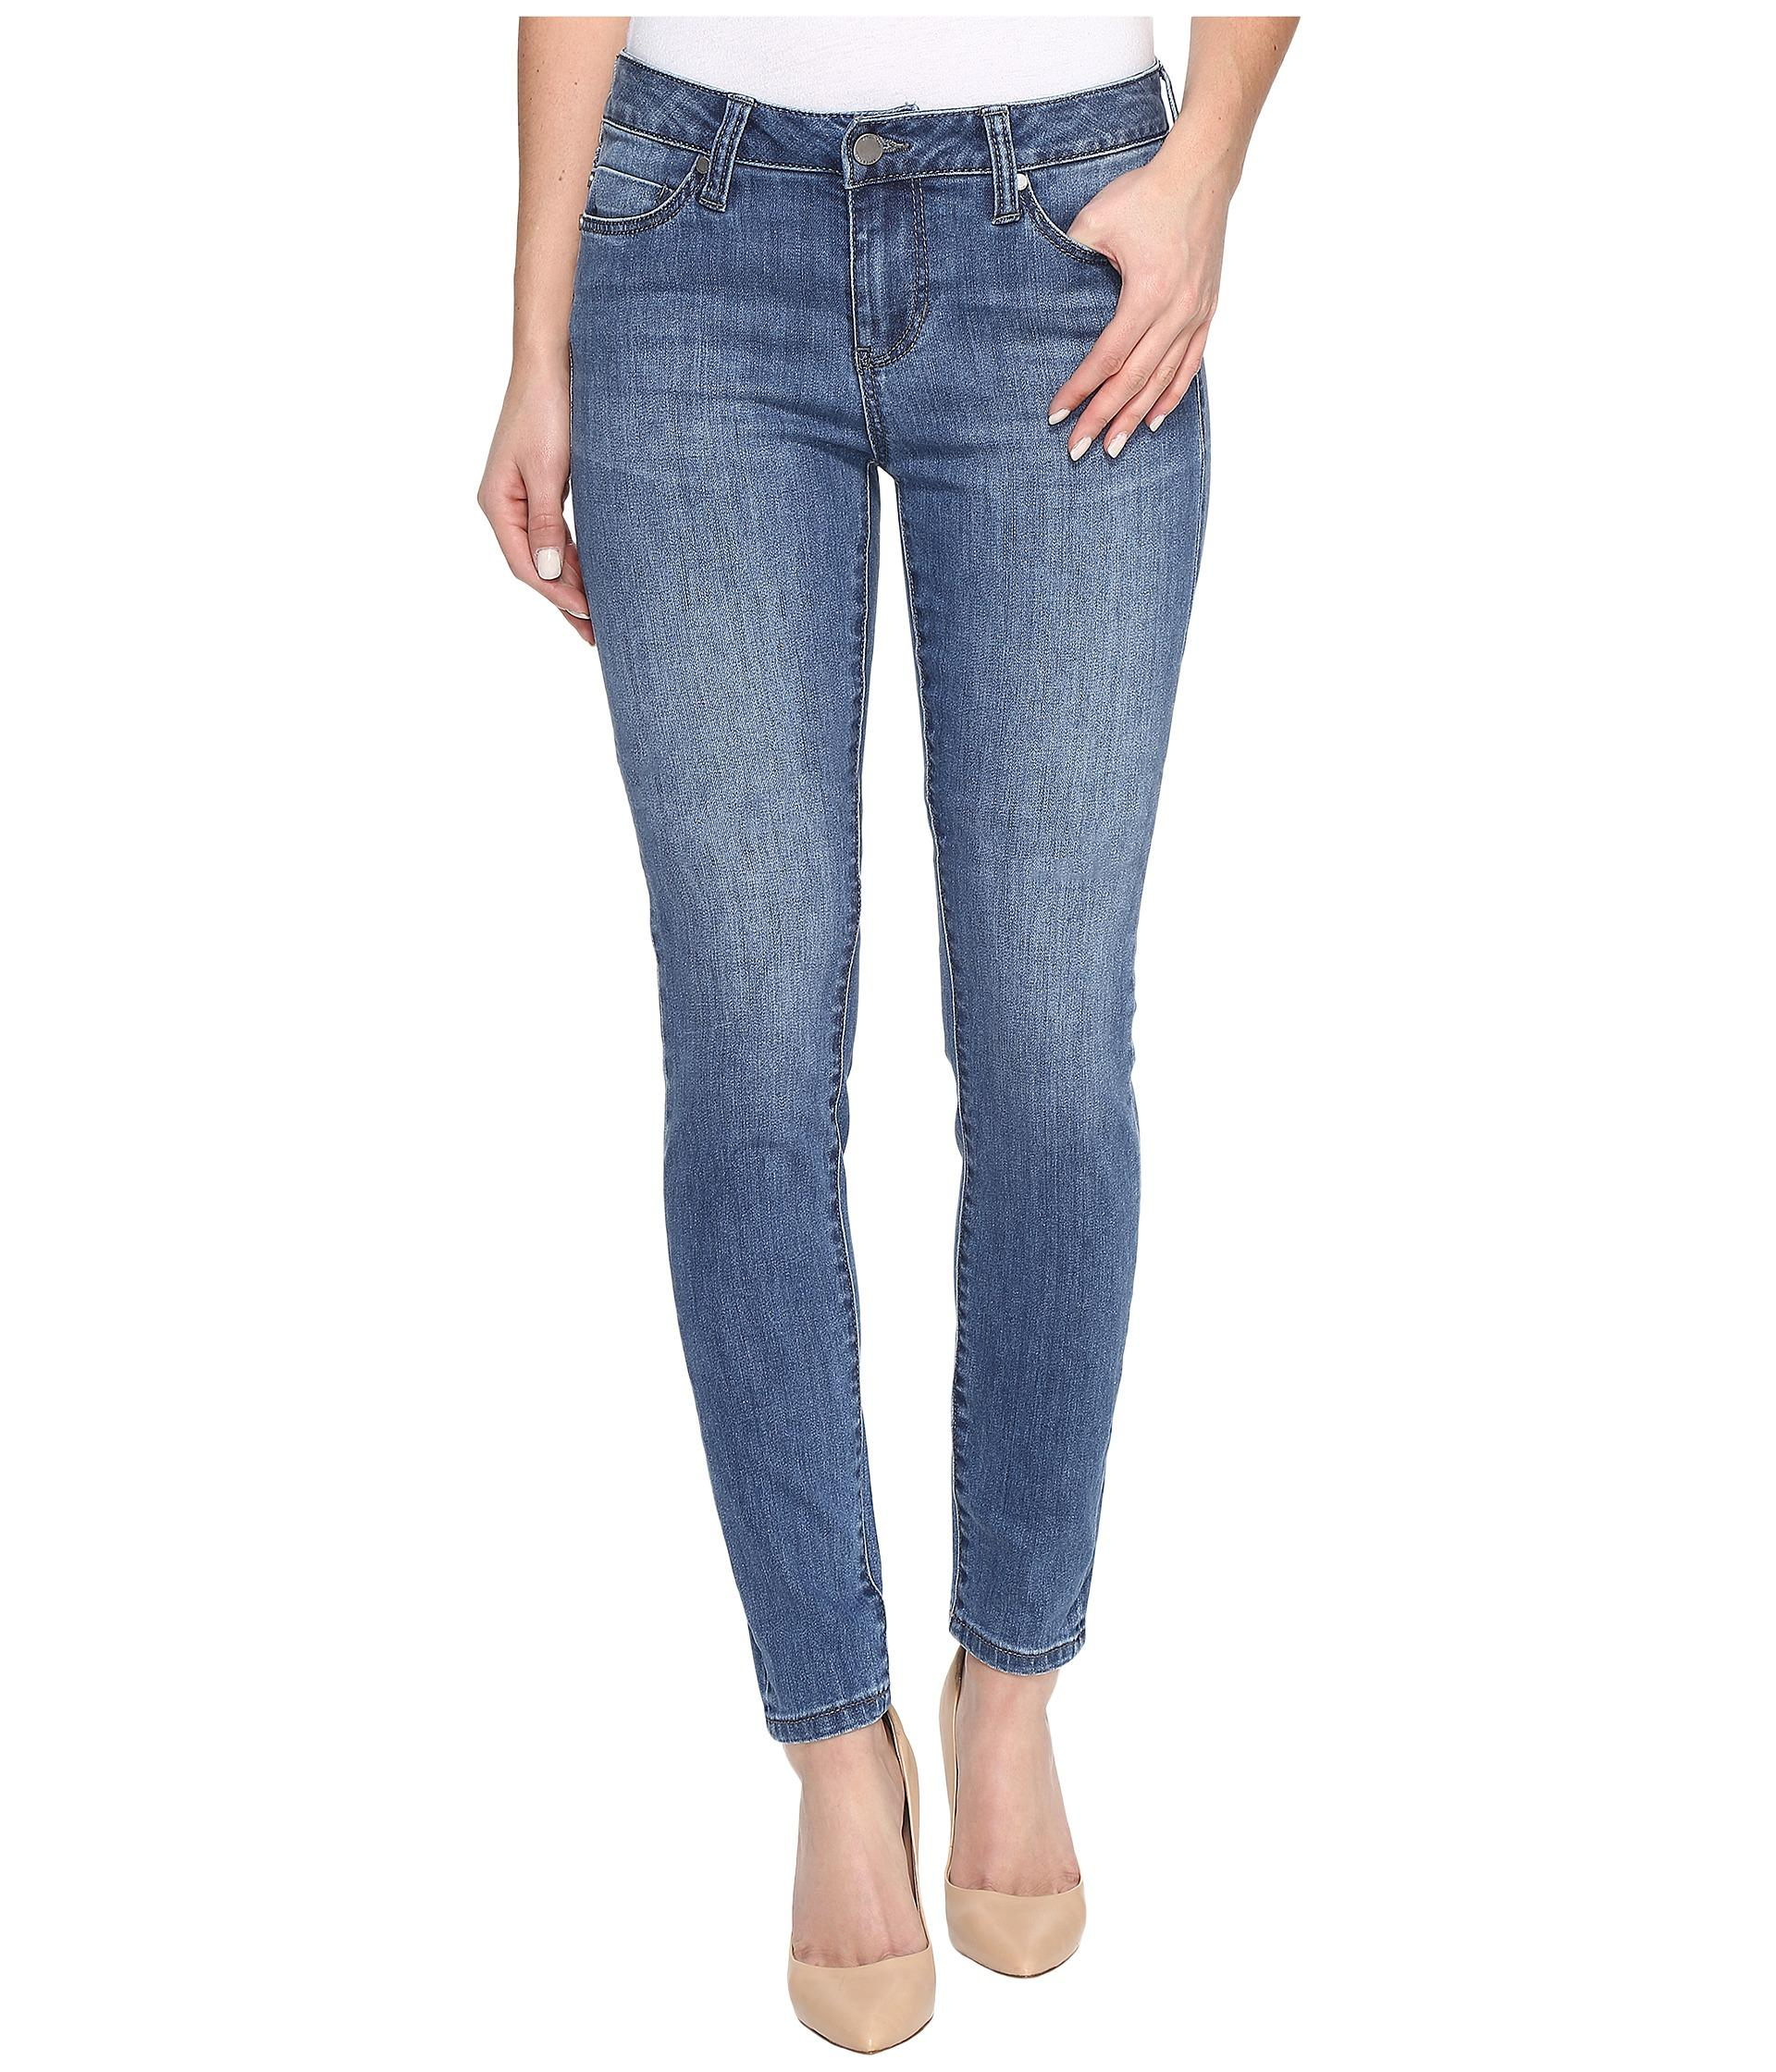 Liverpool jeans company Abby Skinny Vintage Super Comfort Stretch Denim Jeans In Melbourne Light ...